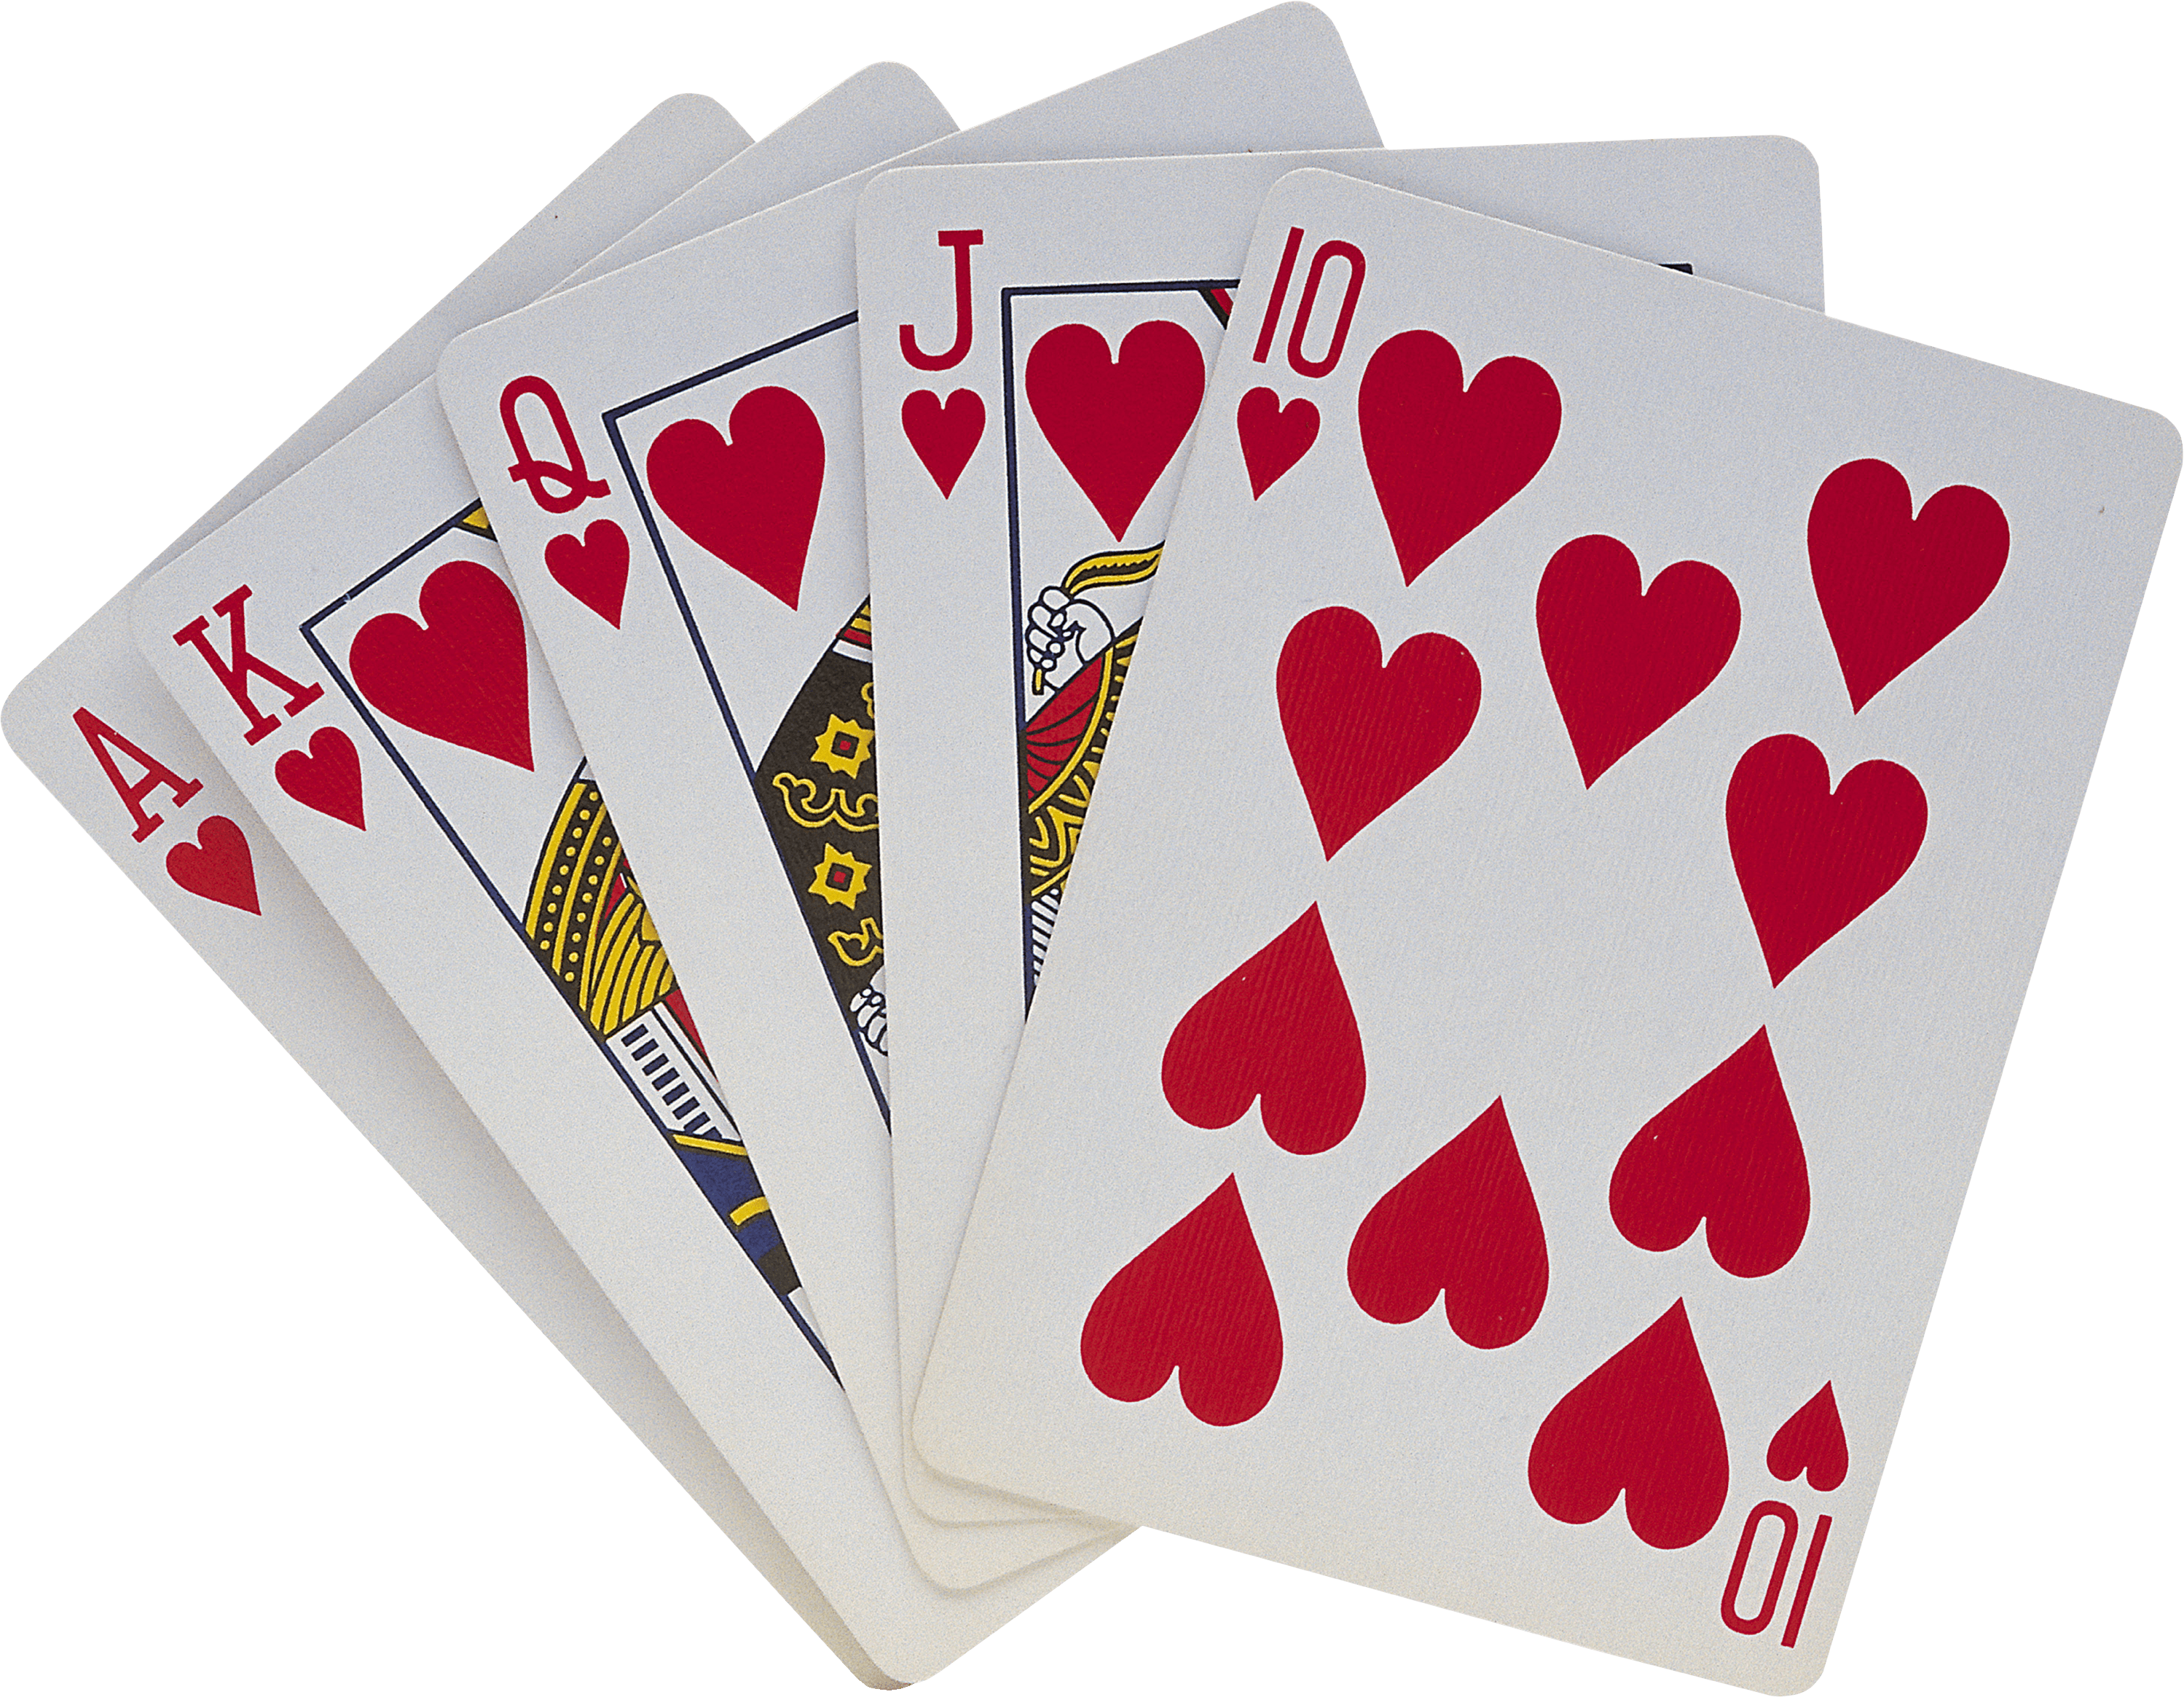 Cards PNG Images Transparent Free Download.